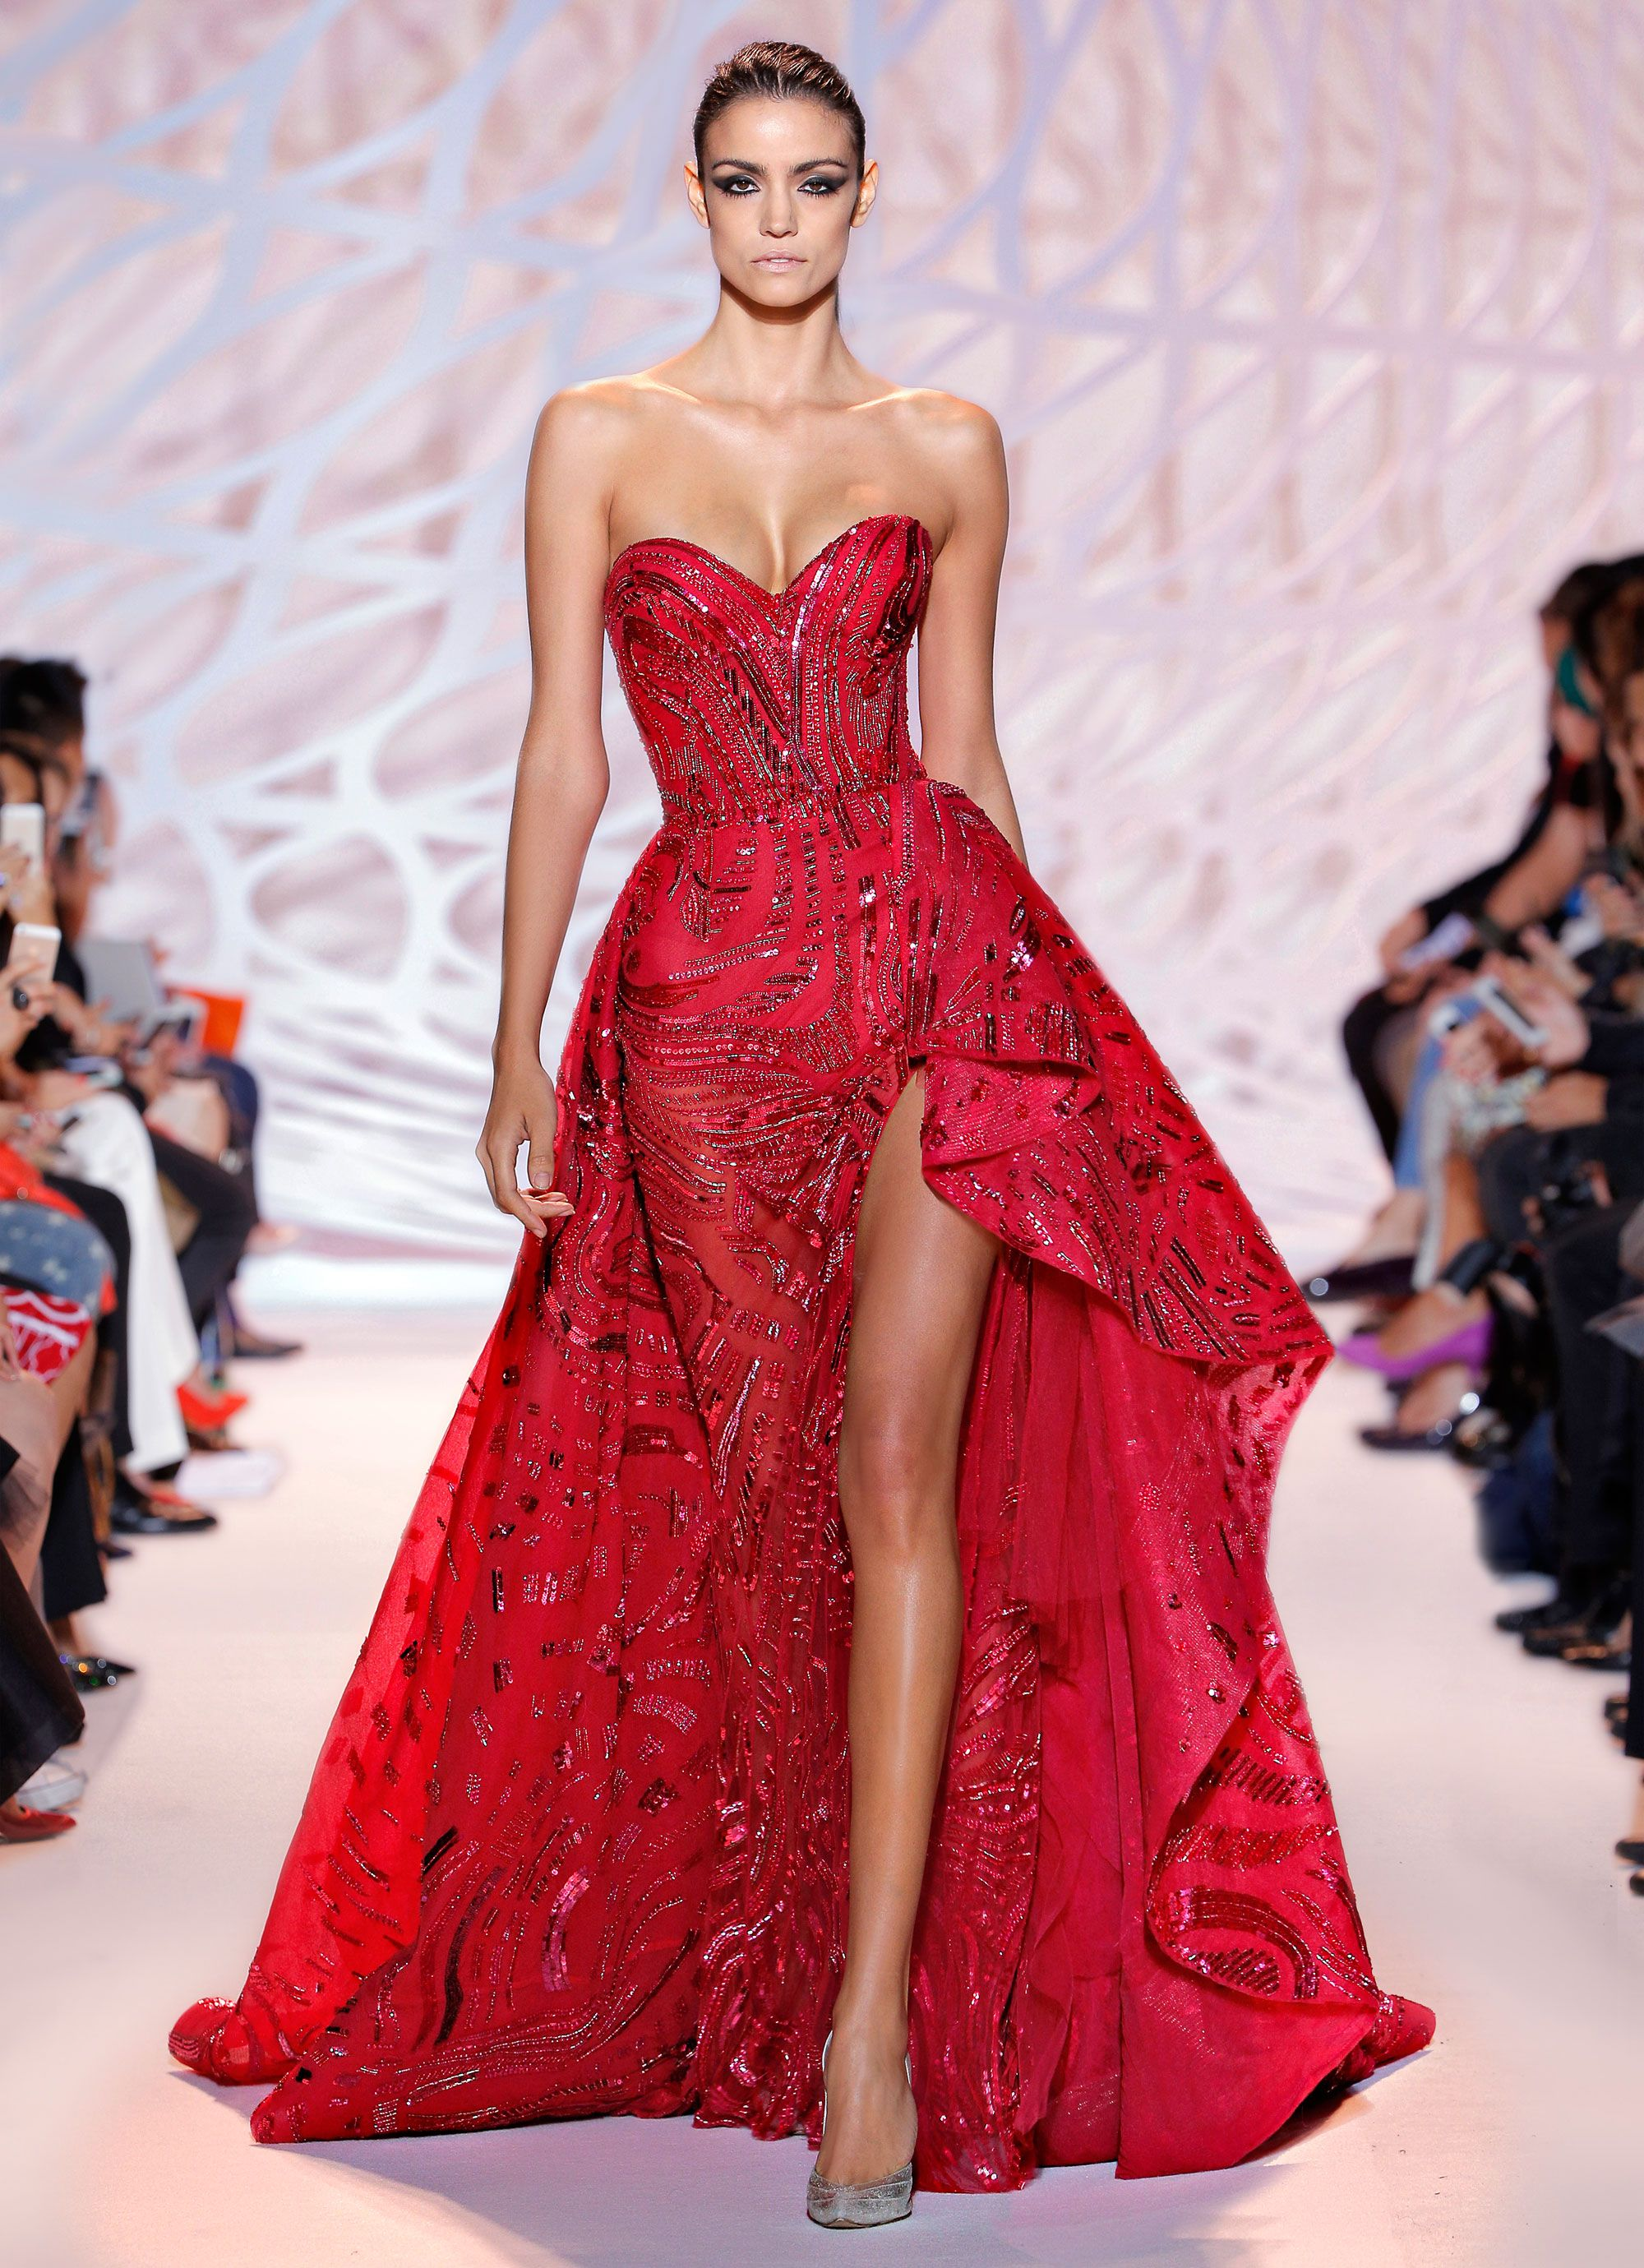 Zuhair Murad | Zuhair Murad | Pinterest | Zuhair murad, Gowns and ...